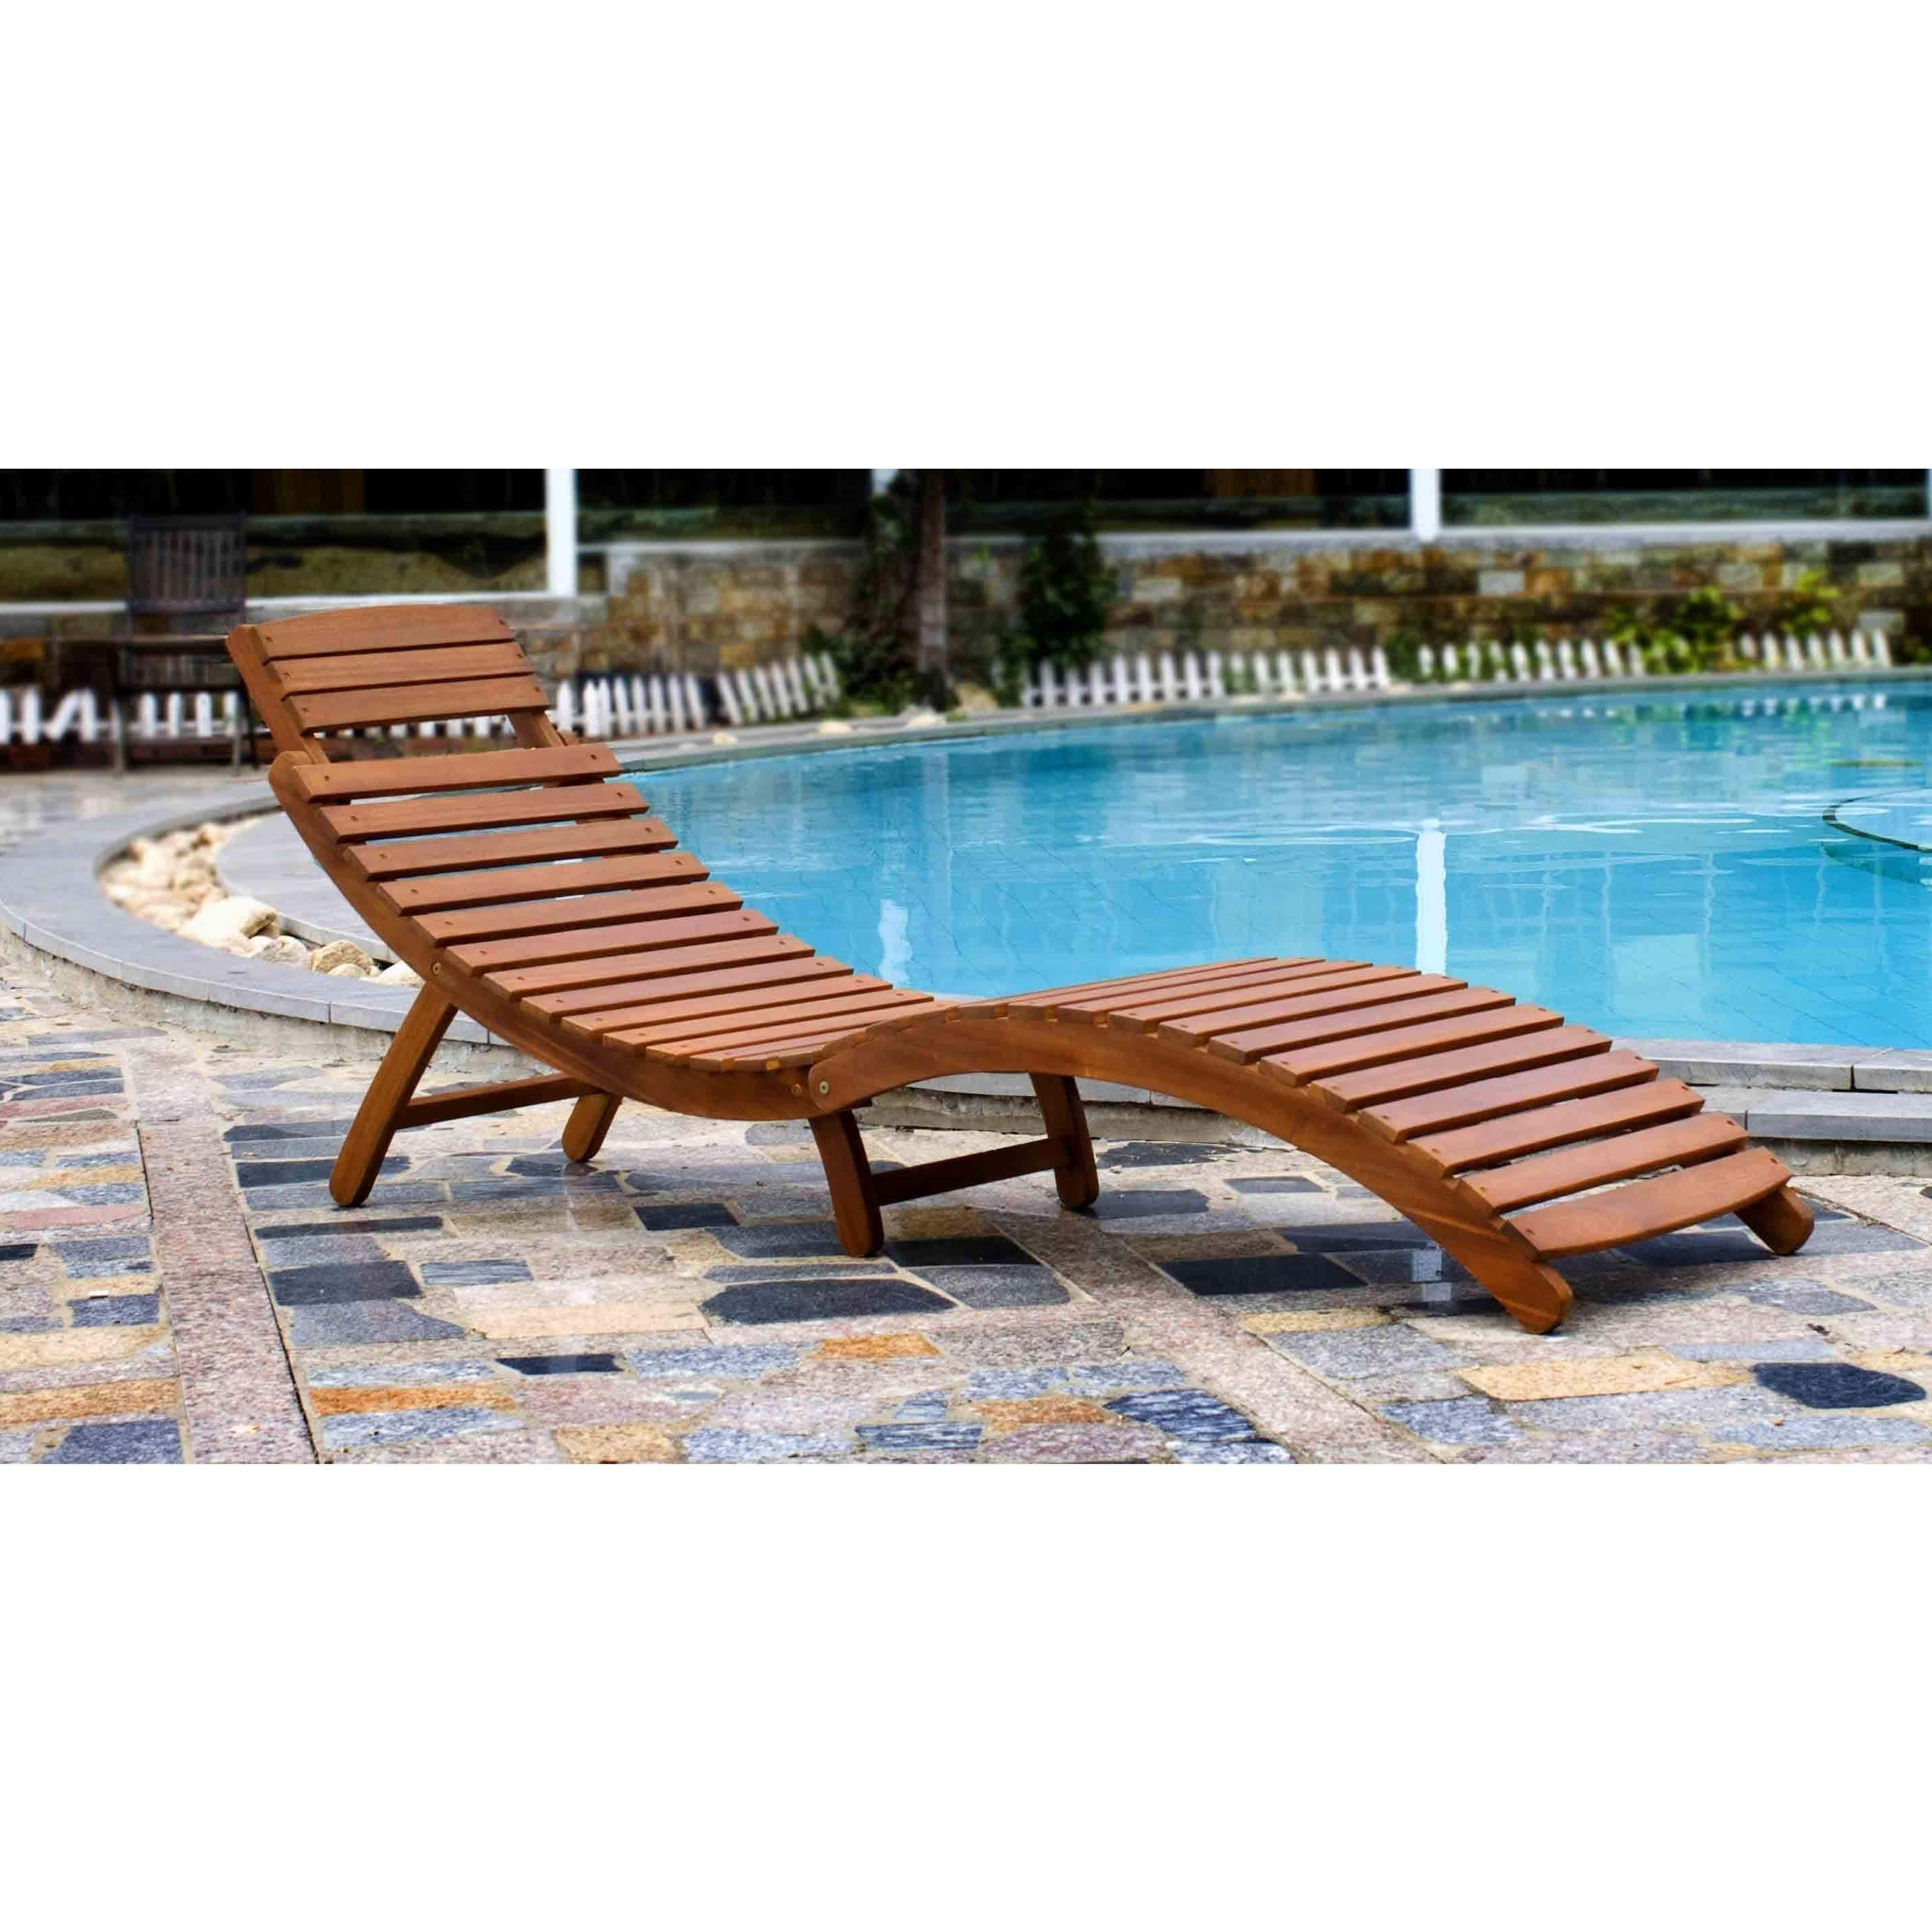 Havenside Home Shi Shi Curved Folding Chaise Lounger With Regard To Well Liked Brown Folding Patio Chaise Lounger Chairs (View 14 of 25)